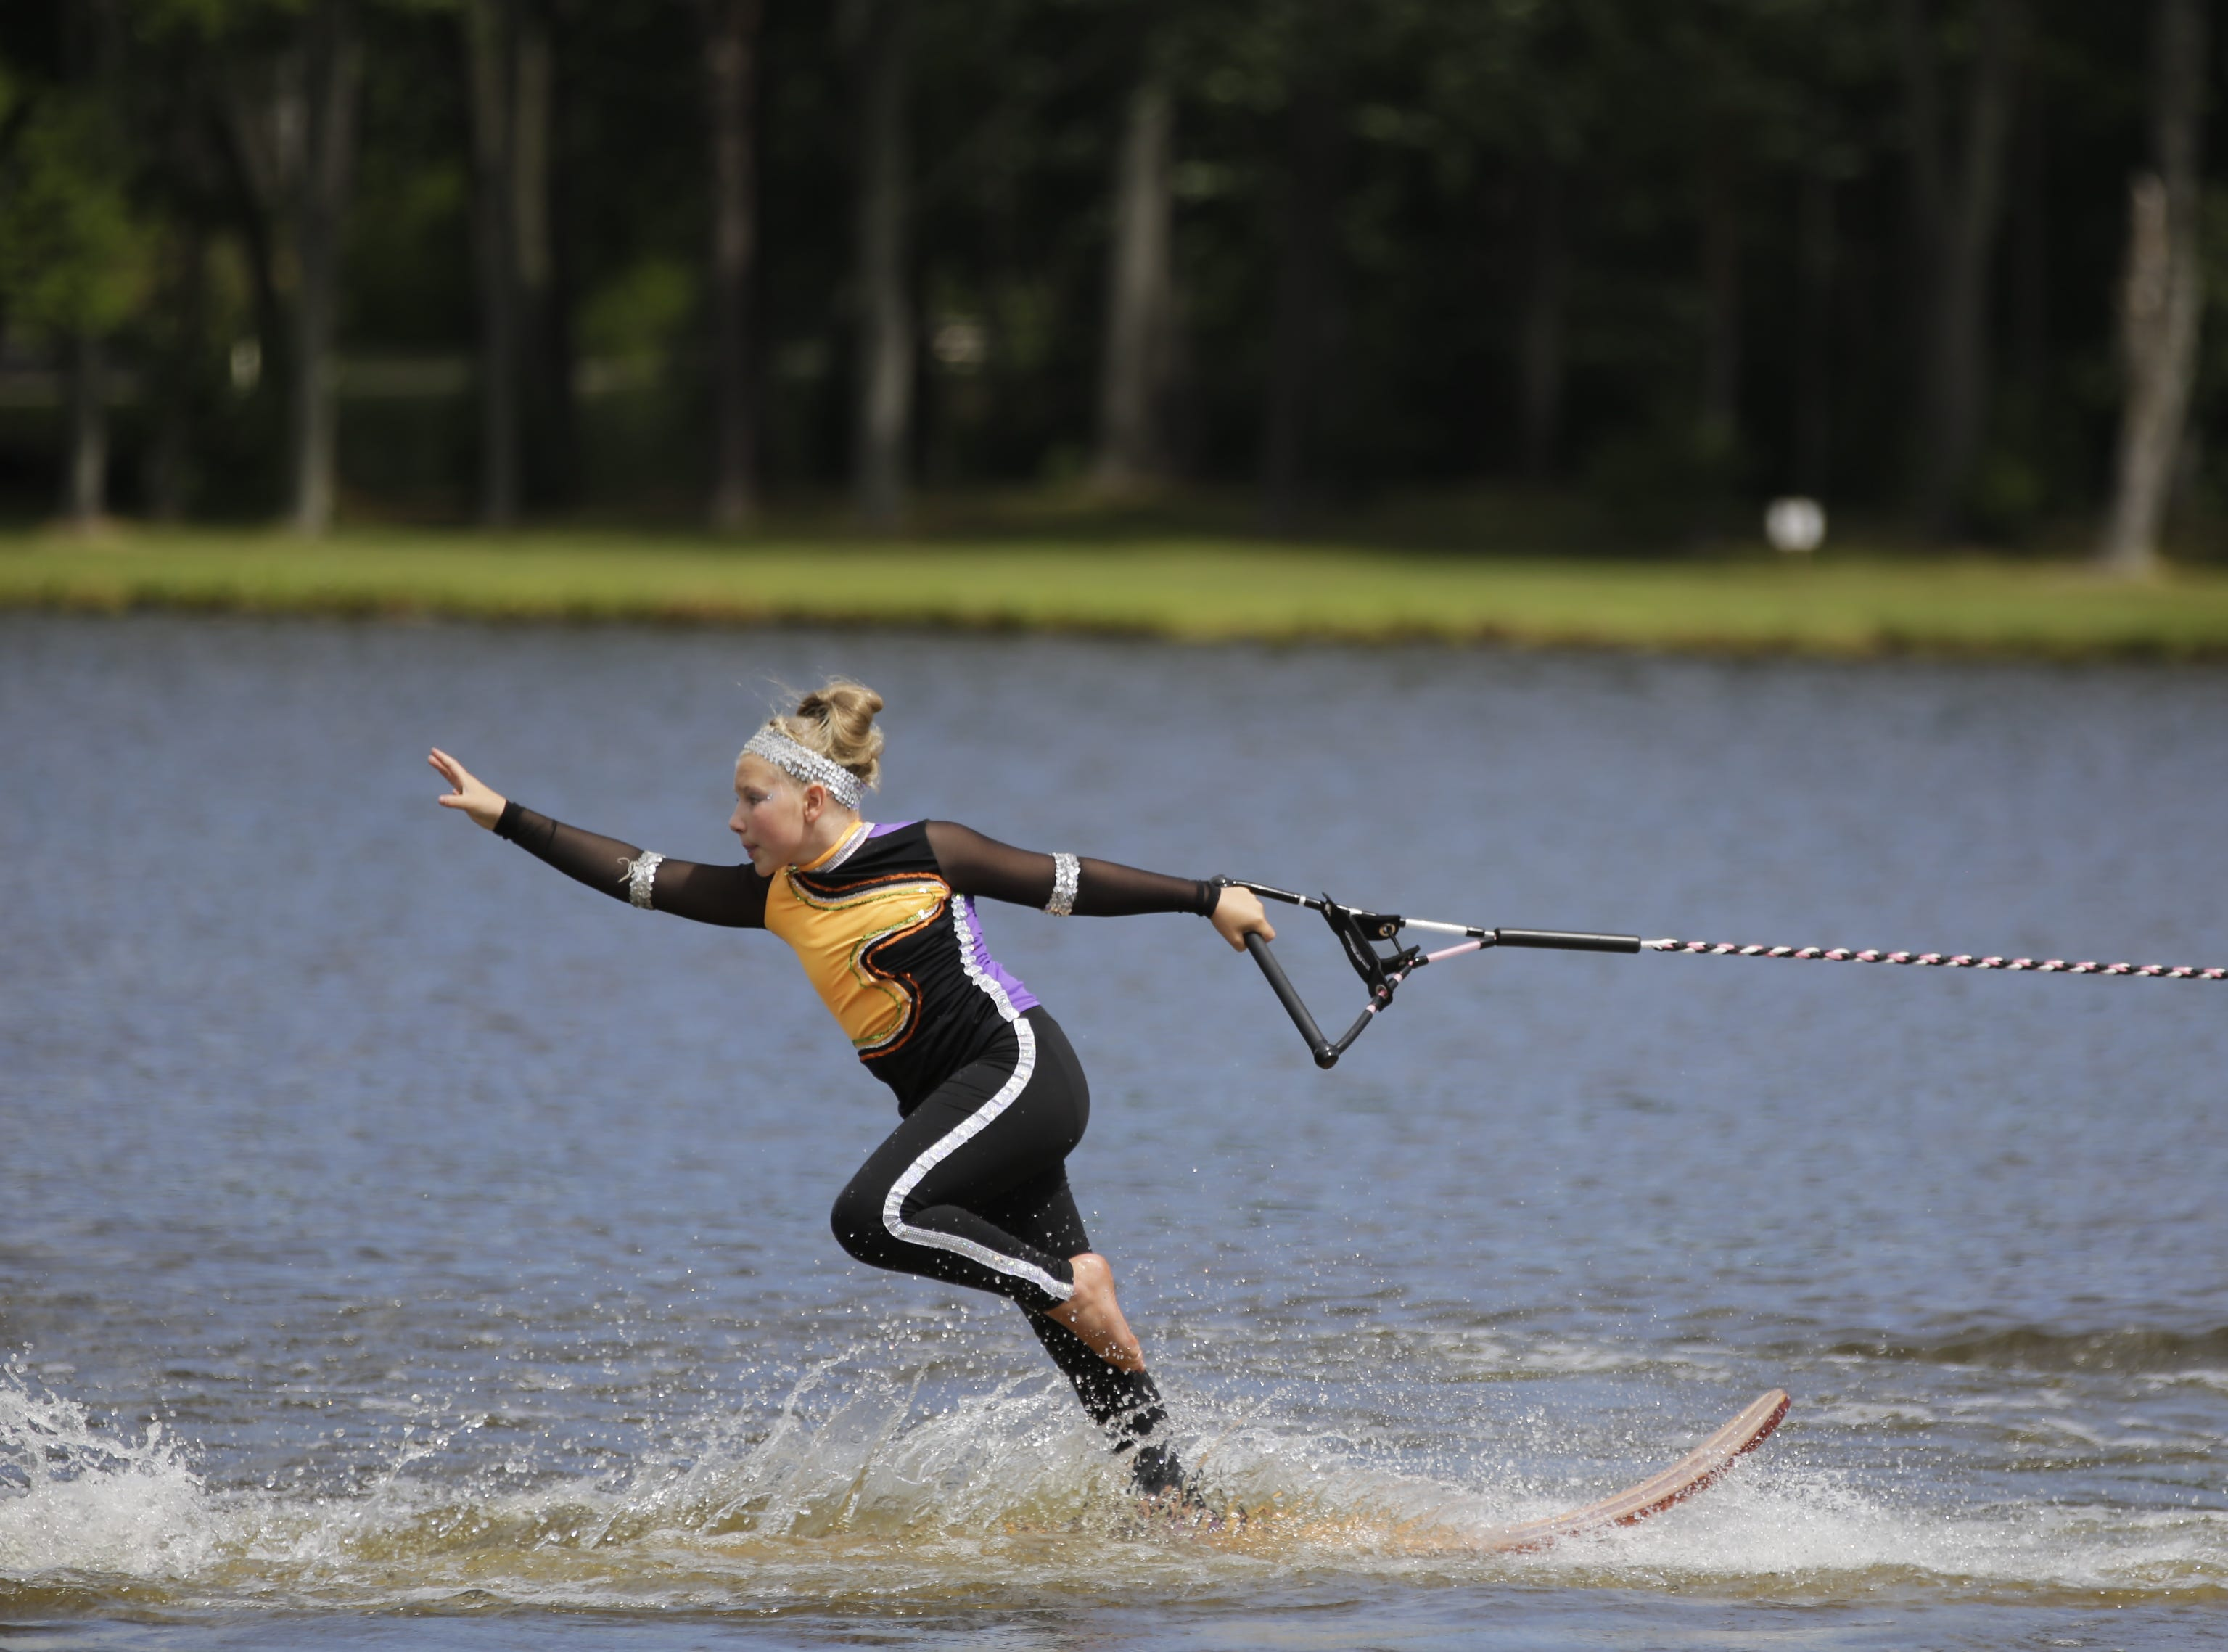 Abby Langer competes in the swivel category during the Wisconsin State Water Ski Show Championships on Lake Wazeecha in Kellner Thursday, July 19, 2018.